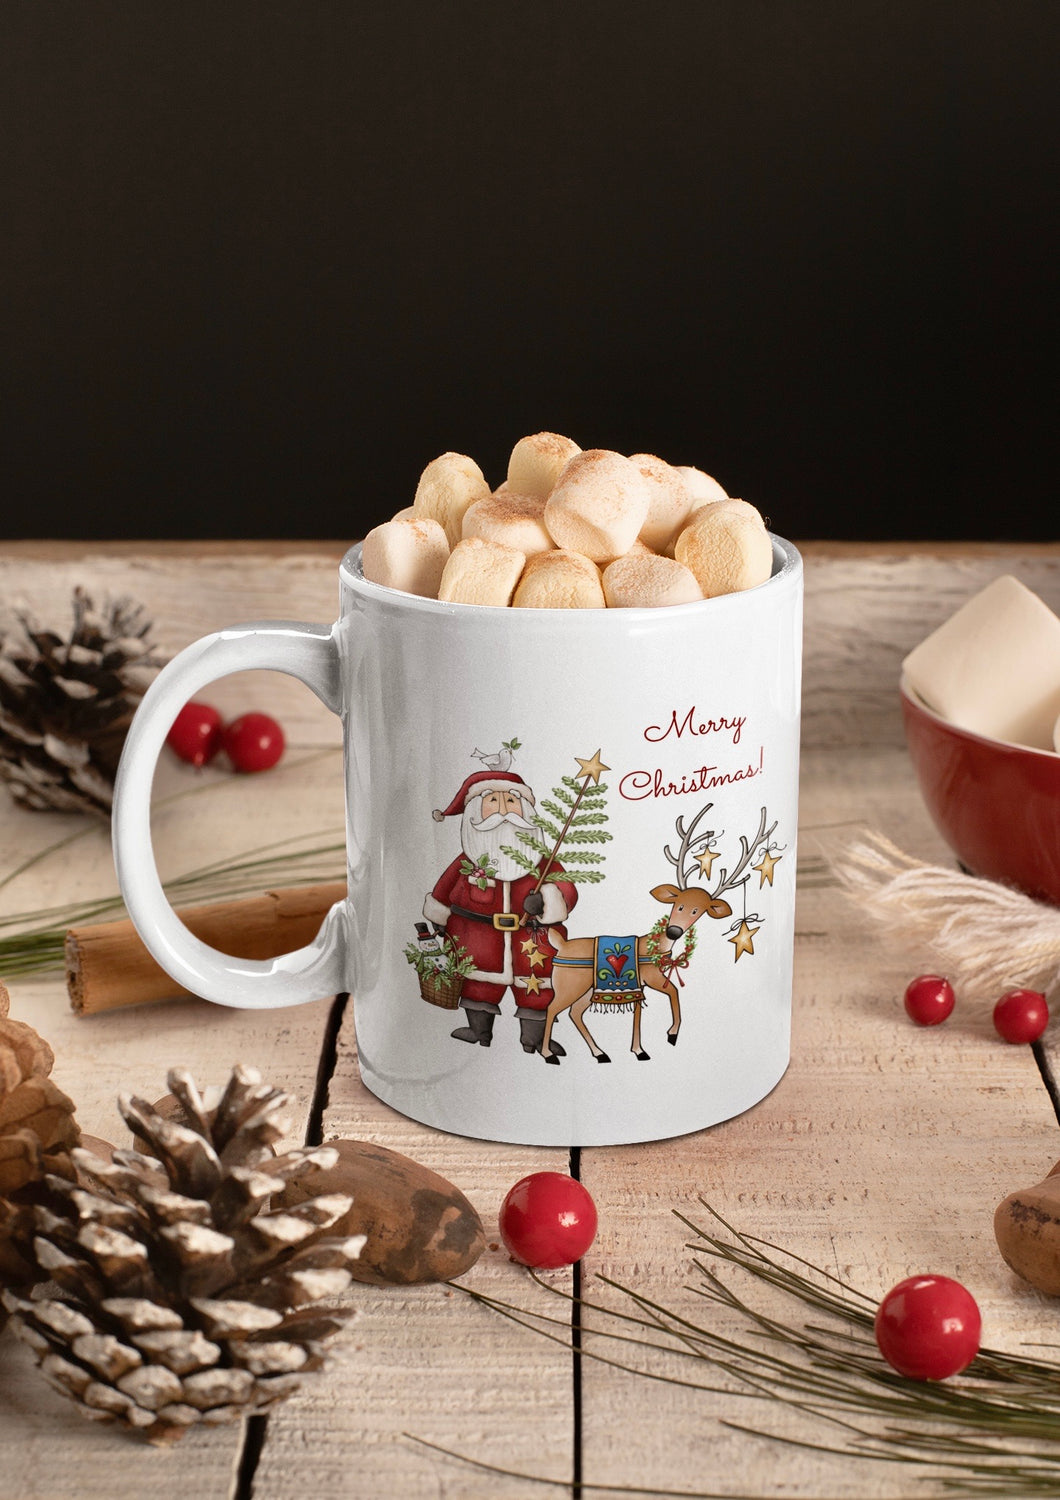 Merry Christmas Rustic Santa Ceramic Mug